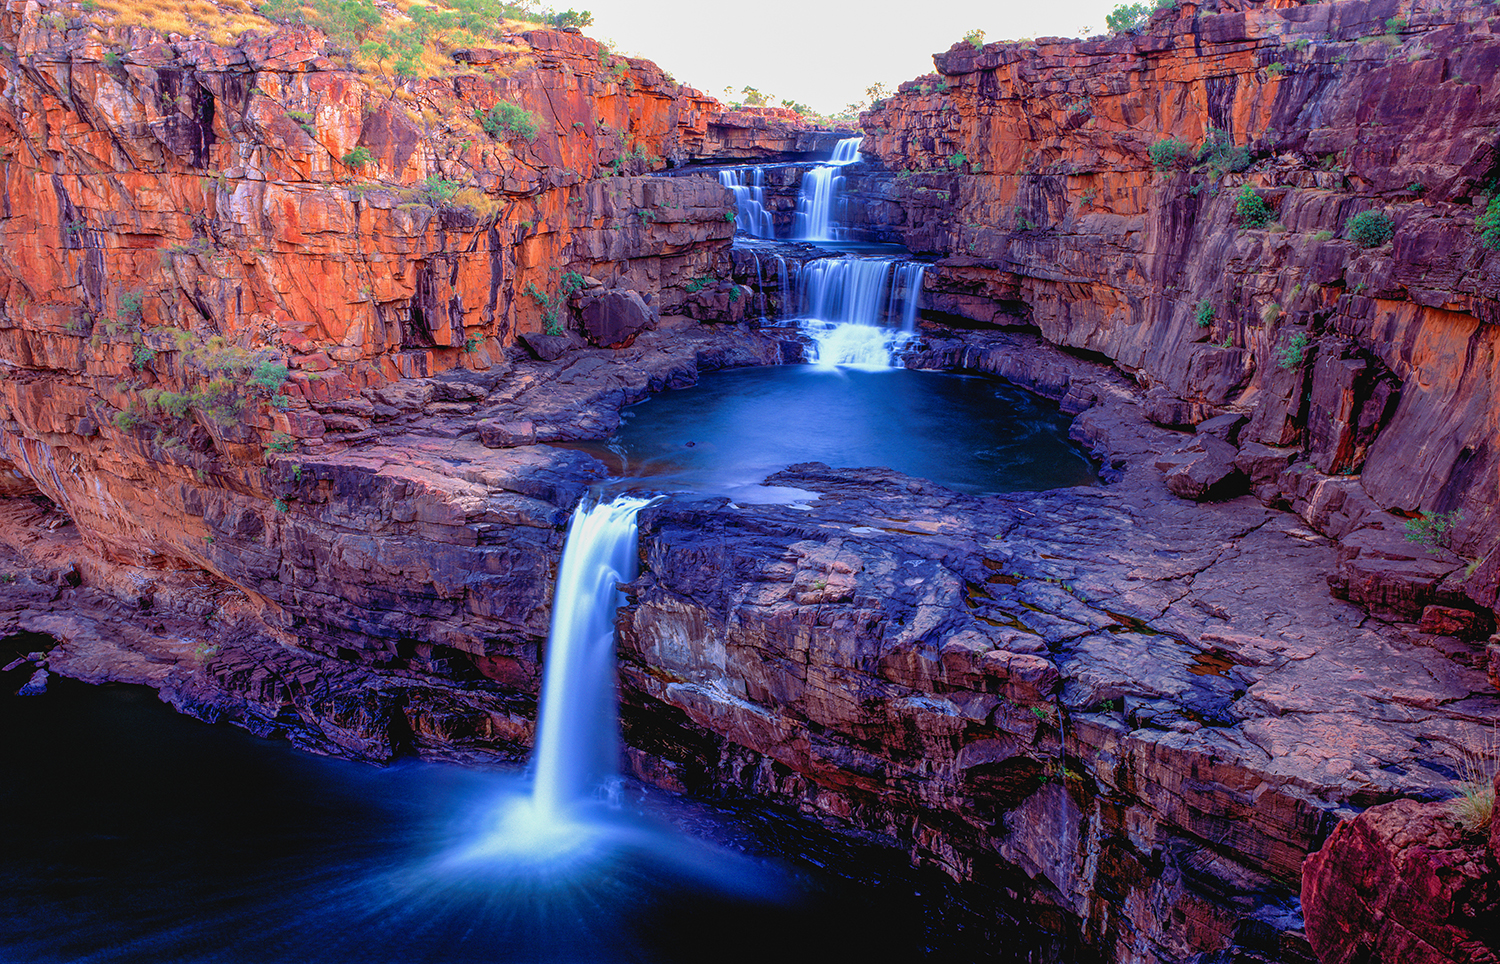 Australian scenery, landscapes and seascapes